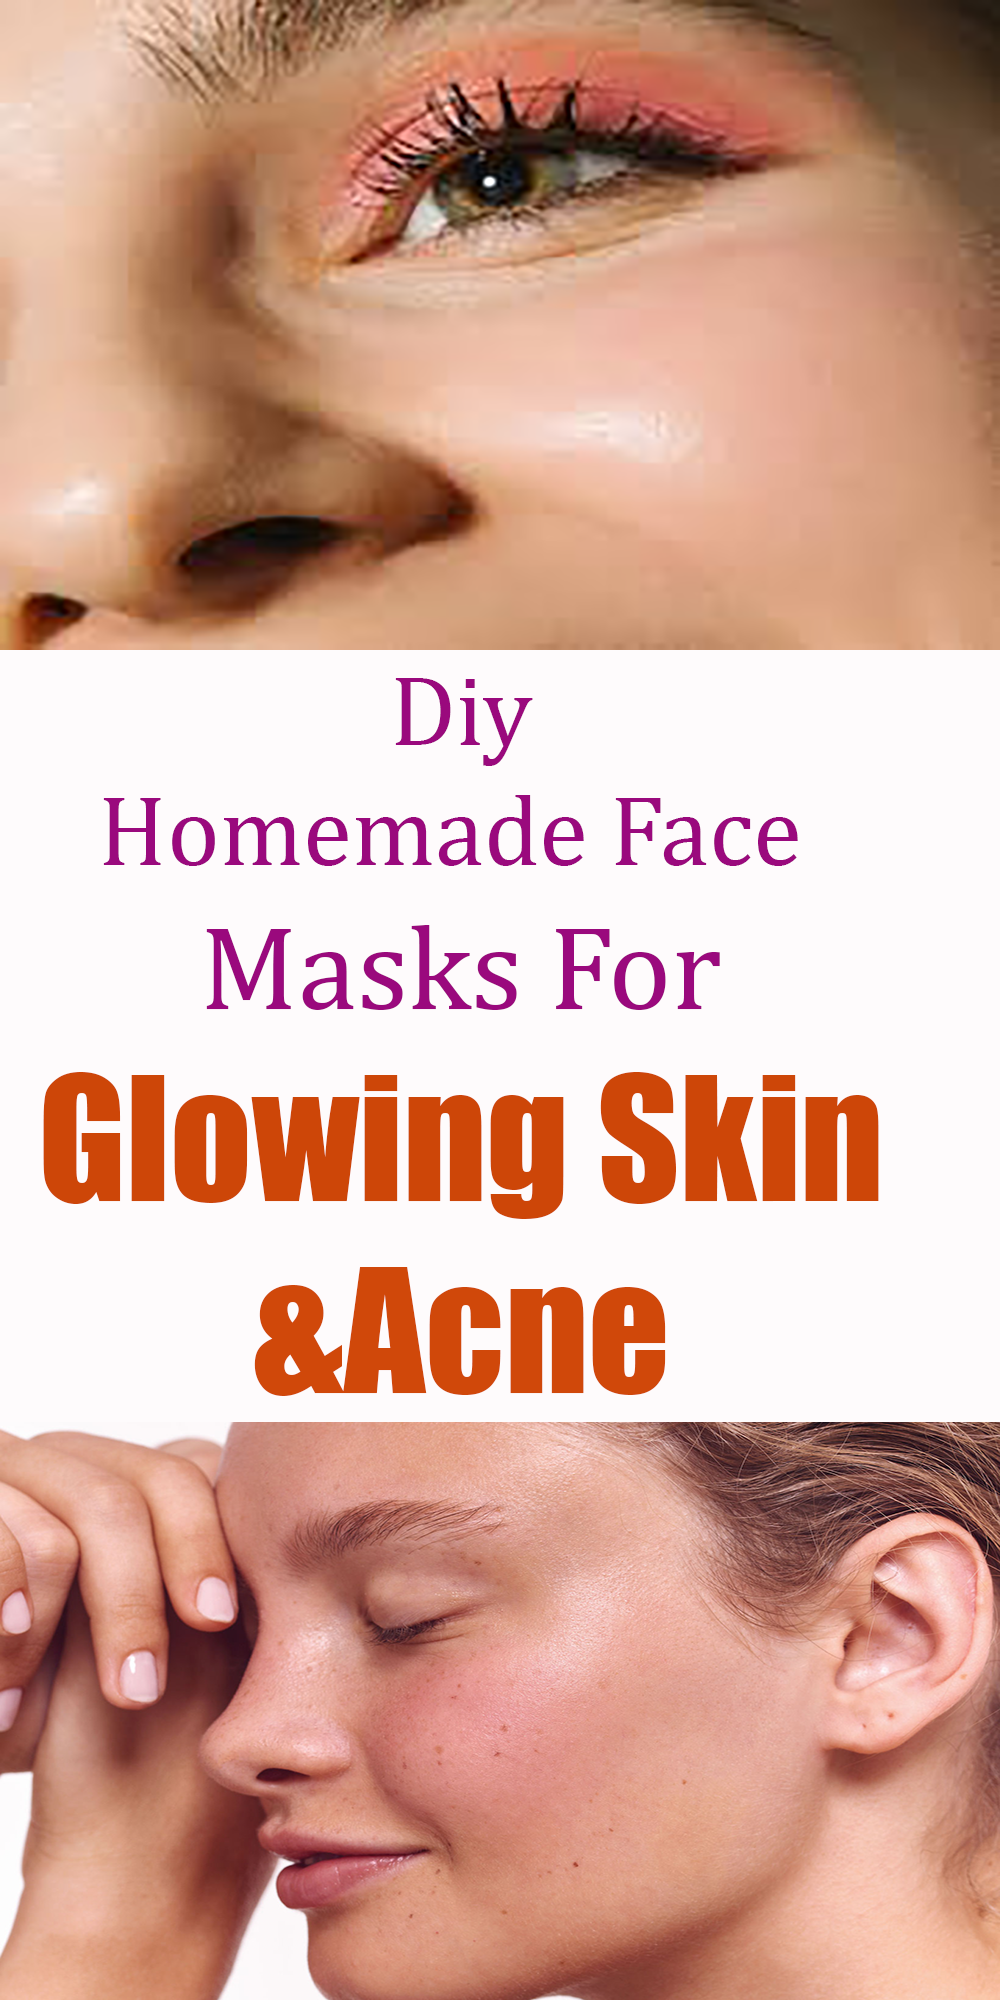 Diy Homemade Face masks For Glowing Skin & Acne in 2020